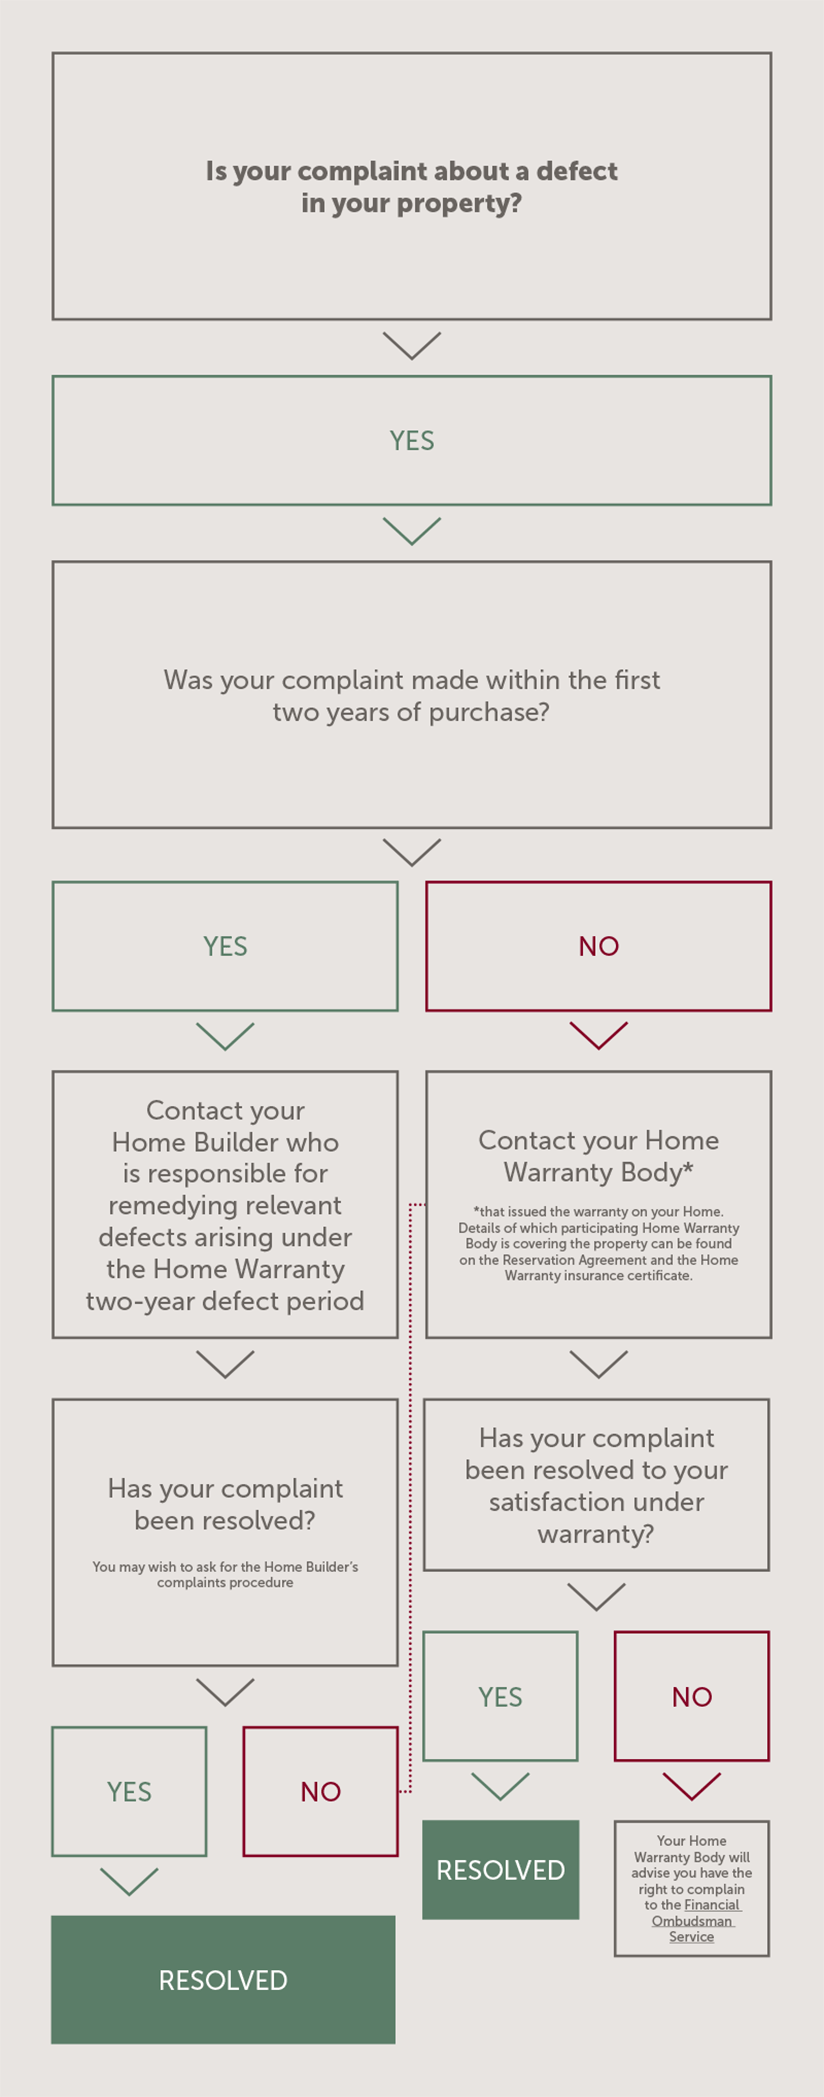 Download Complaints Summary – Is your complaint about a defect in your property?